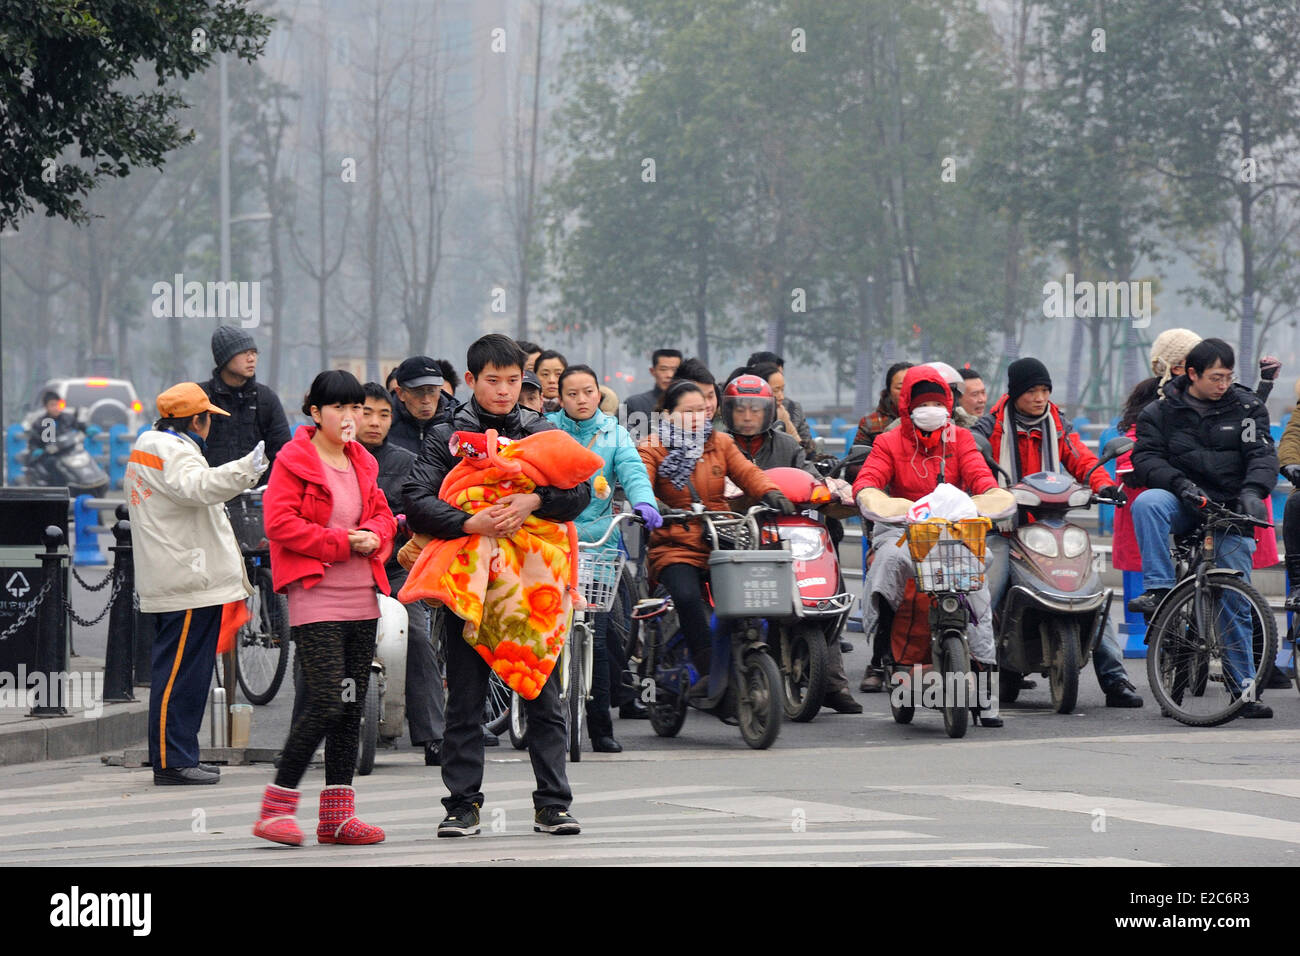 China, Sichuan, Chengdu, Street crossing - Stock Image